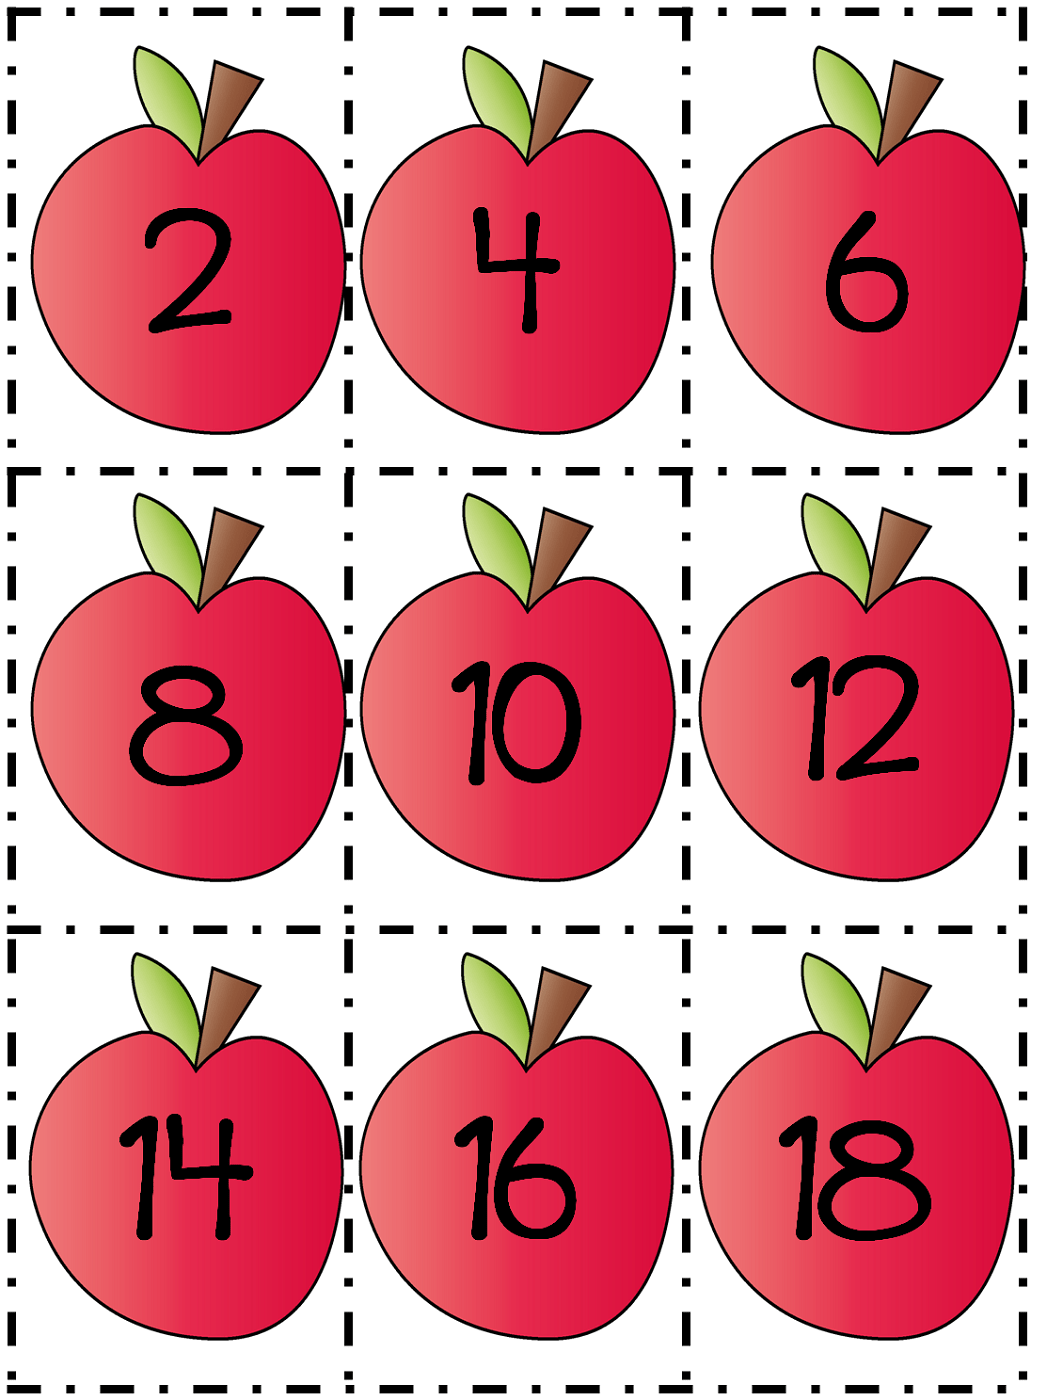 Count By 2s Worksheet Apples Activity Shelter